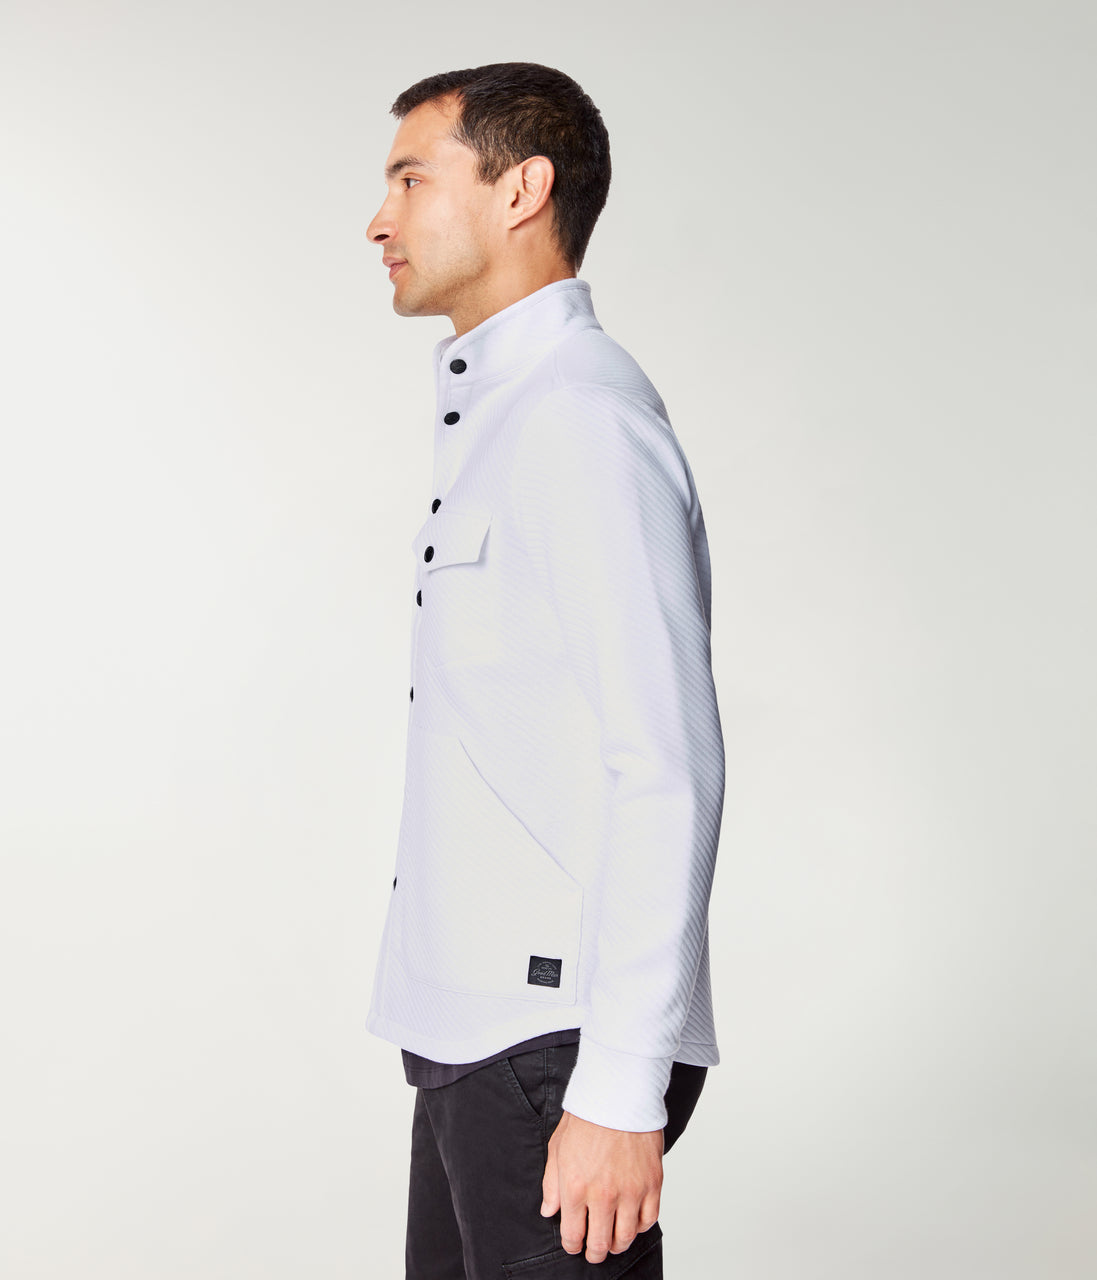 Twill Quilt Jacquard Fuji Shirt Jacket - White - Good Man Brand - Twill Quilt Jacquard Fuji Shirt Jacket - White